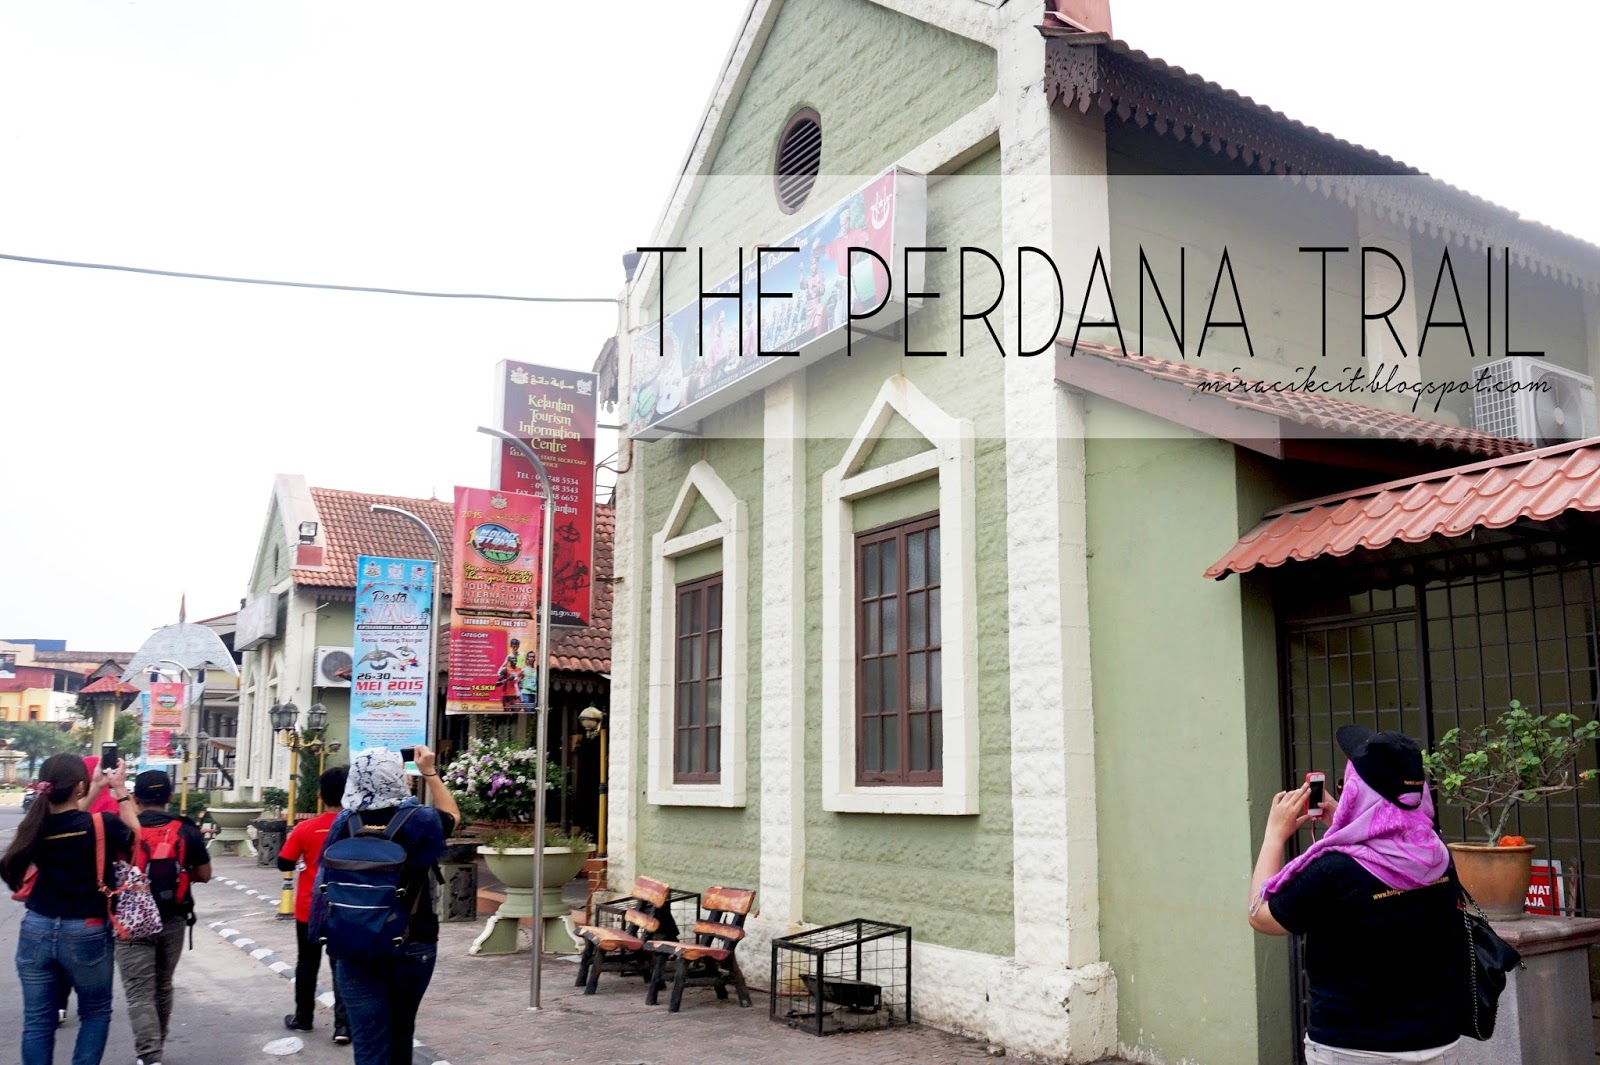 kota bharu guys Independent travel guide to kota bharu, includes up to date information on guesthouses and hotels, attractions and advice on travel, timetables and more.